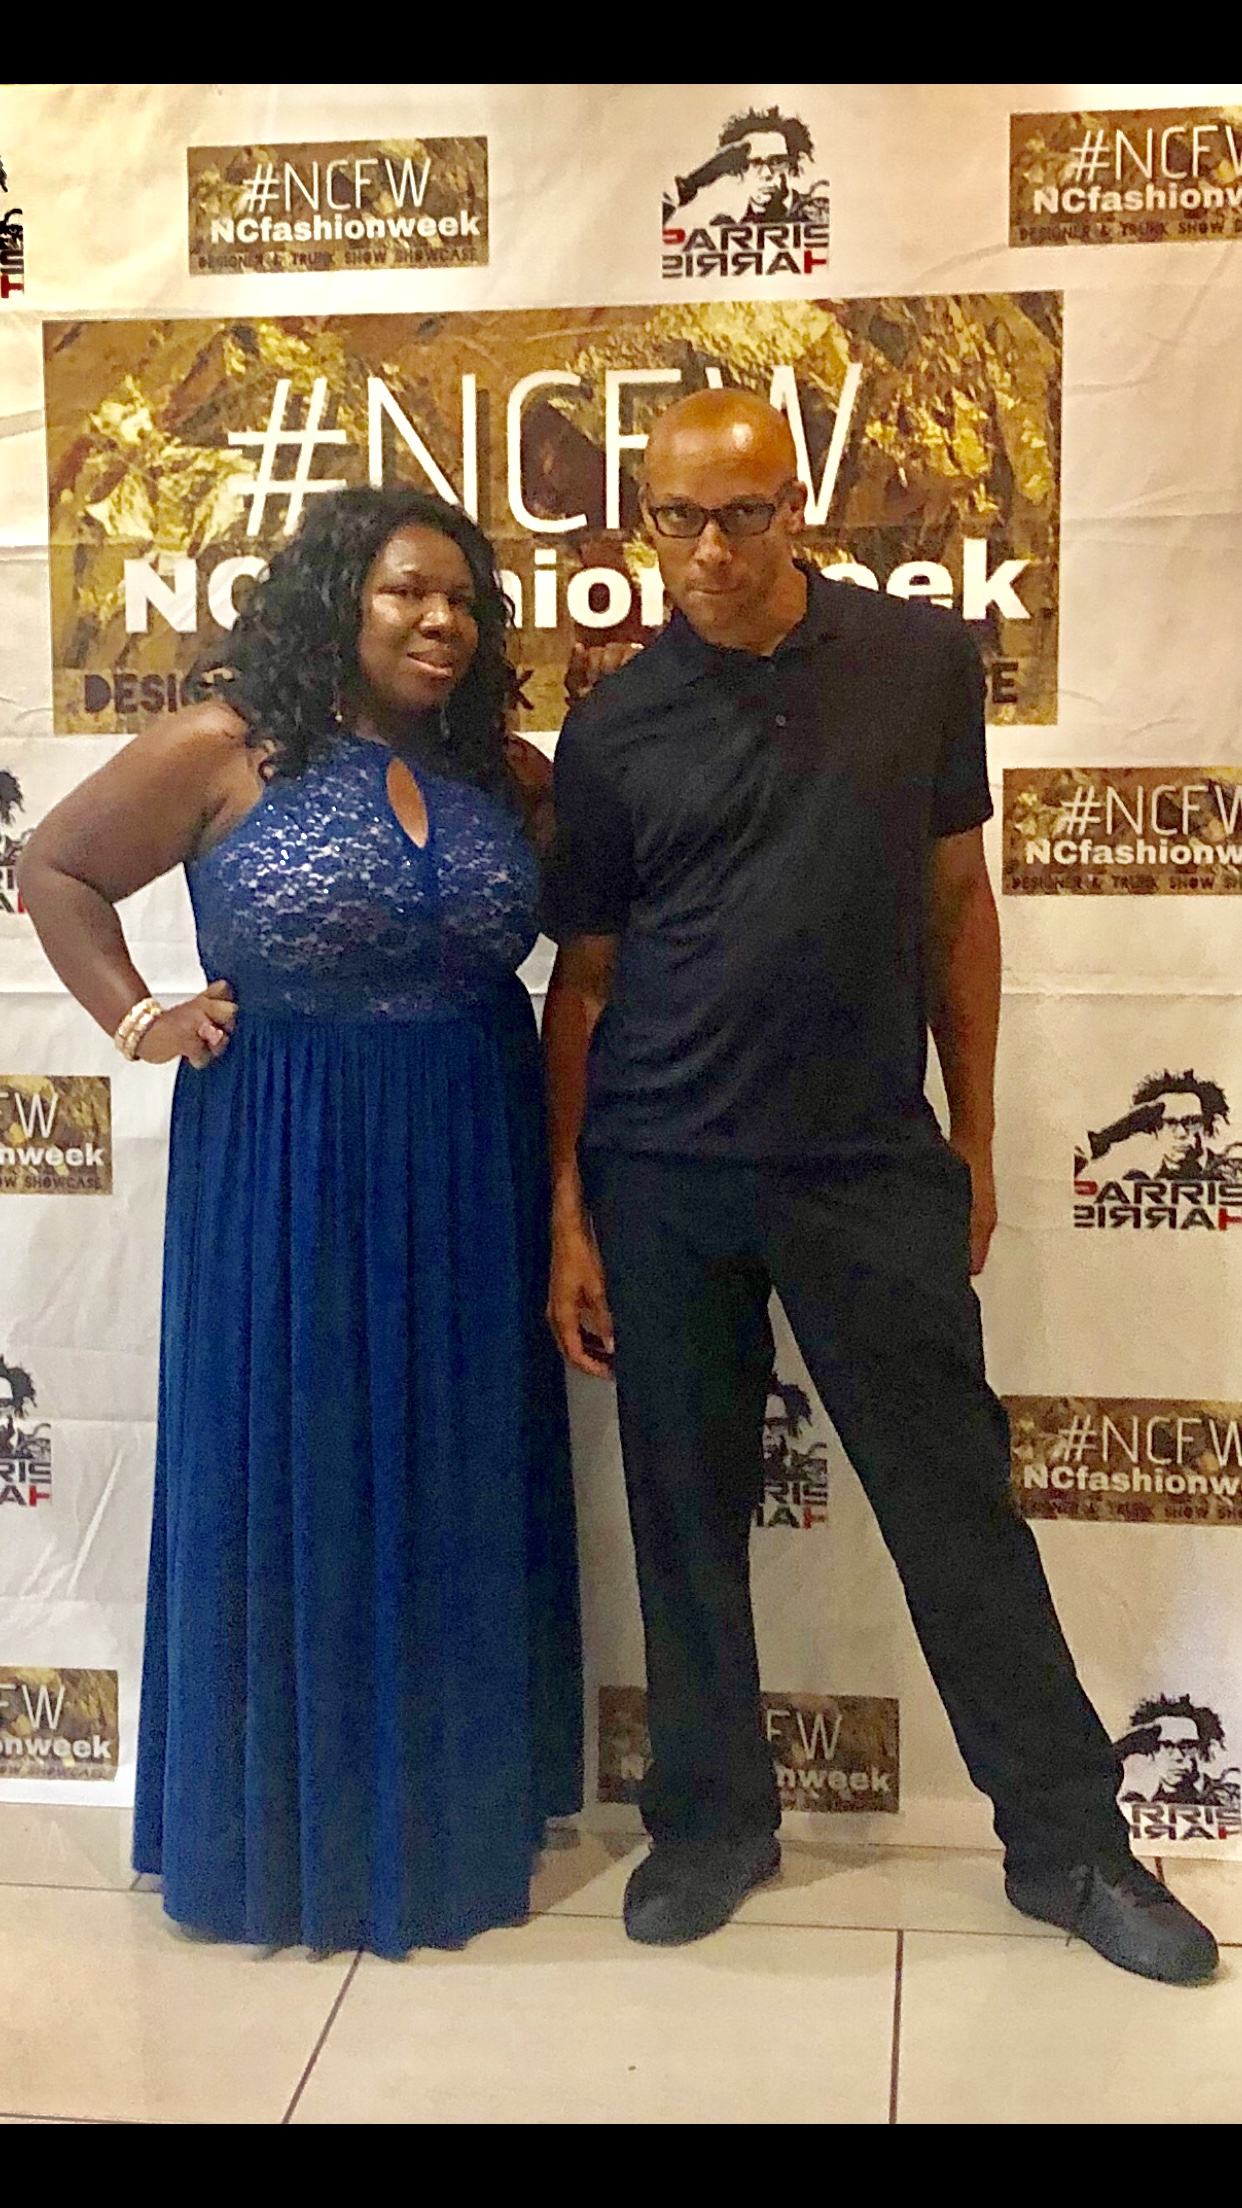 Pictured here:  Jennifer Baker CEO & Founder for Metro faces international Talent Agency and NCfashionWeek (left)  Parris Harris- Co Producer & Creative Director of NCfashionWeek (right)